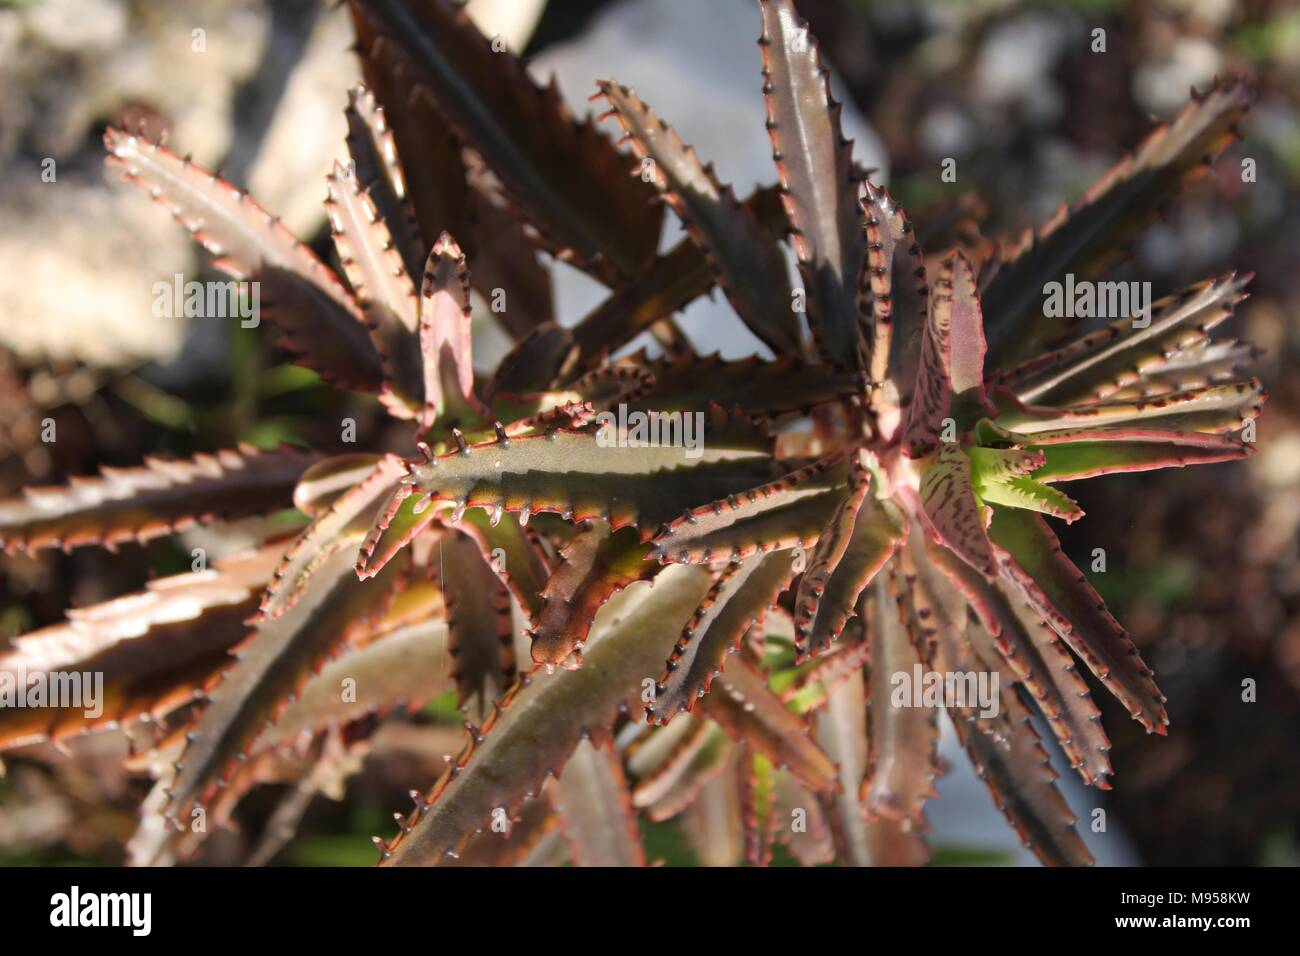 Kalanchoe Daigremontiana Plant In The Garden In Spring Stock Photo